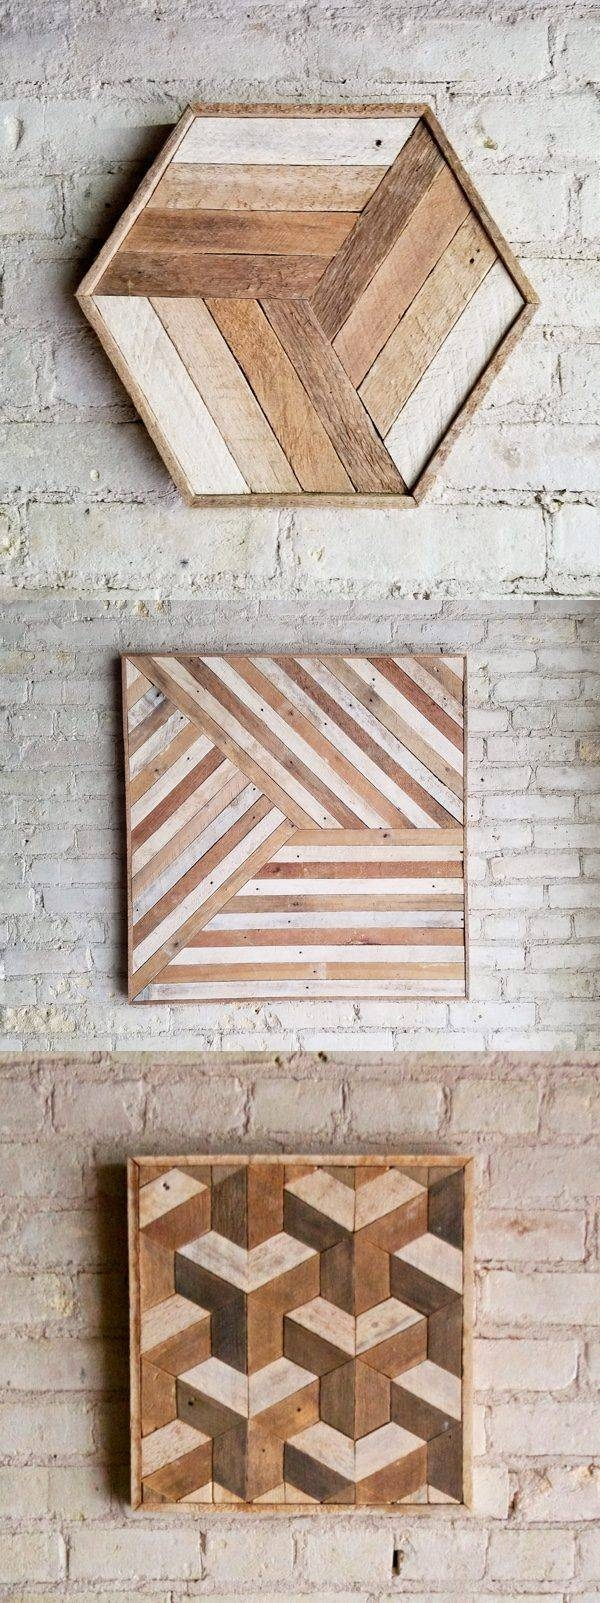 Best 25+ Wood Wall Art Ideas On Pinterest | Wood Art, Geometric For Best And Newest Wall Art On Wood (View 16 of 20)